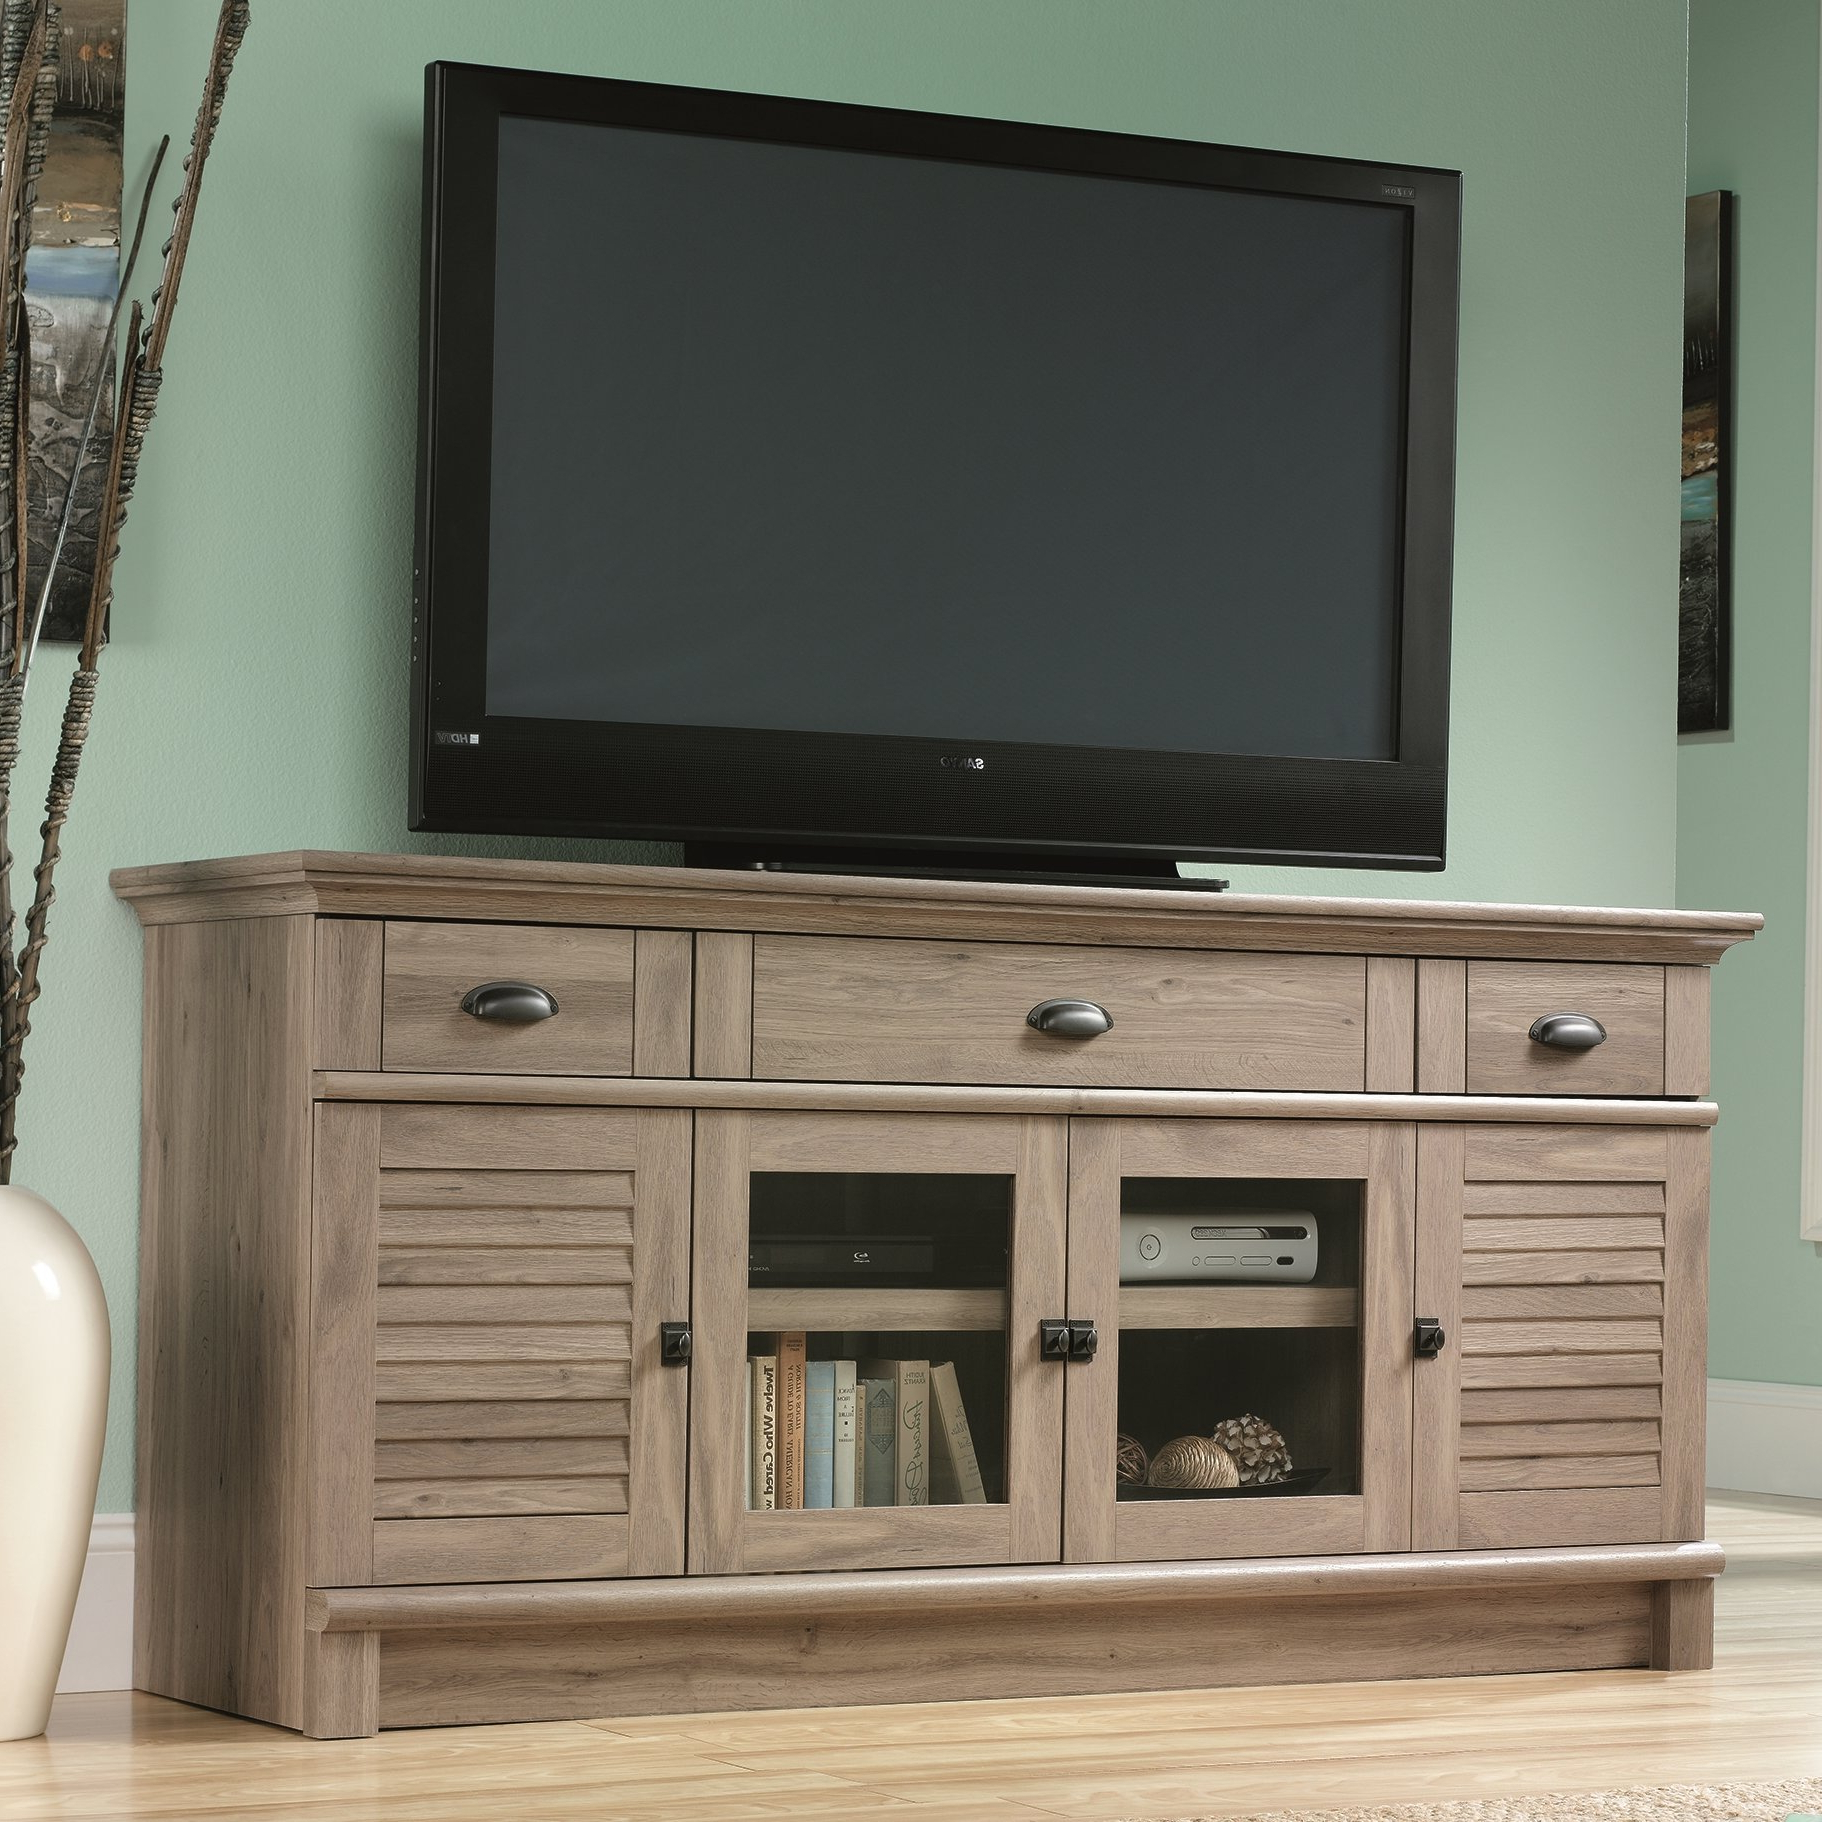 Birch Lane Regarding Most Recently Released Edwin Black 64 Inch Tv Stands (Gallery 15 of 20)